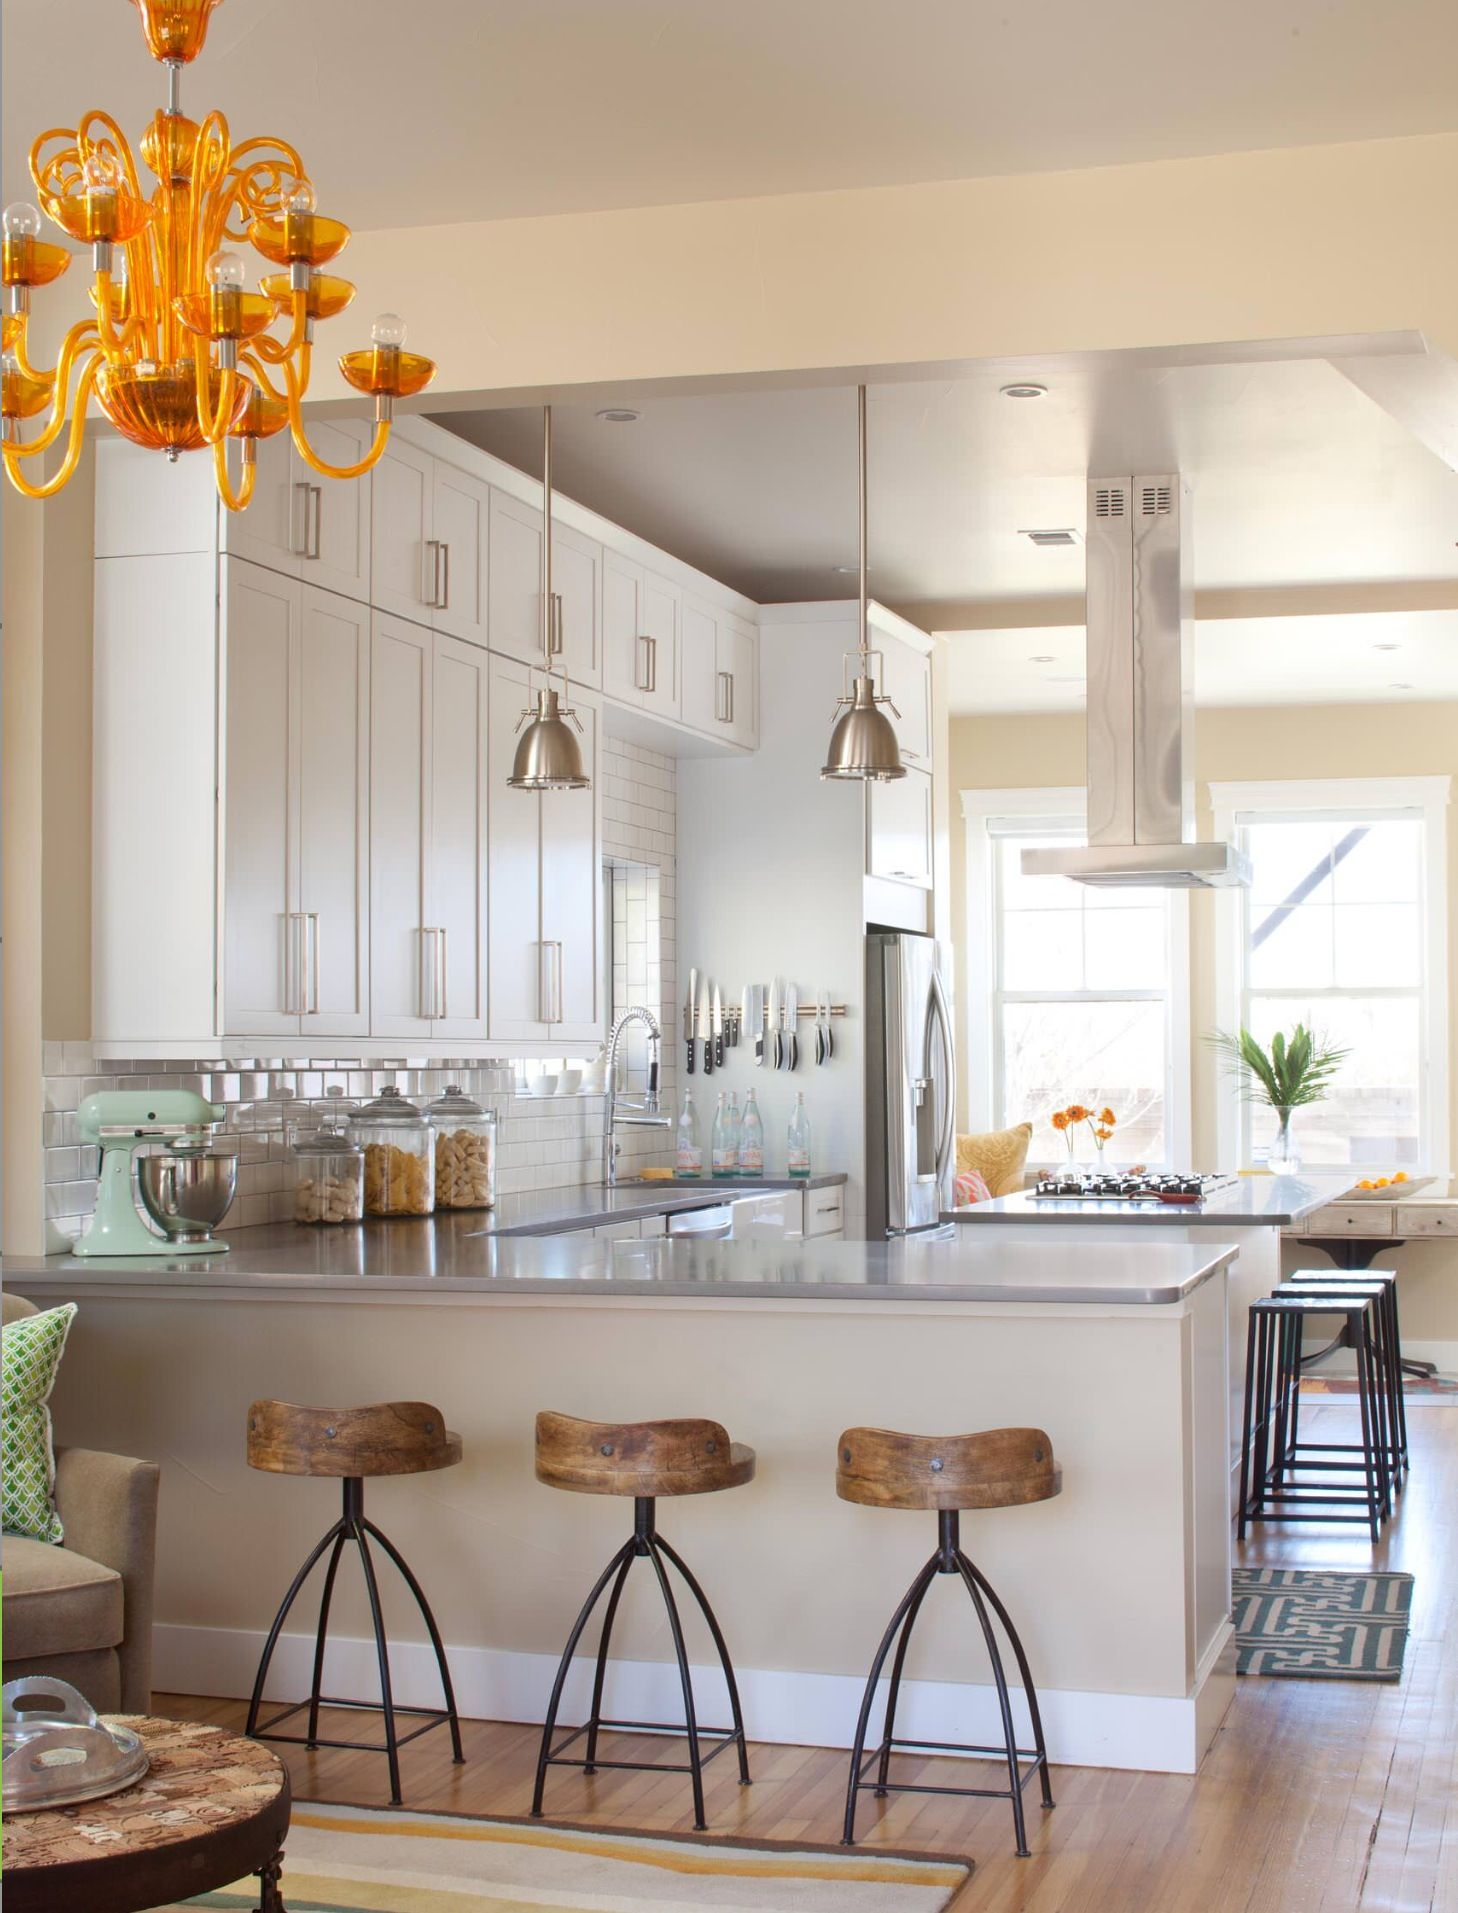 Pin by Cynterest on When I have my own kitchen   Eclectic kitchen ...